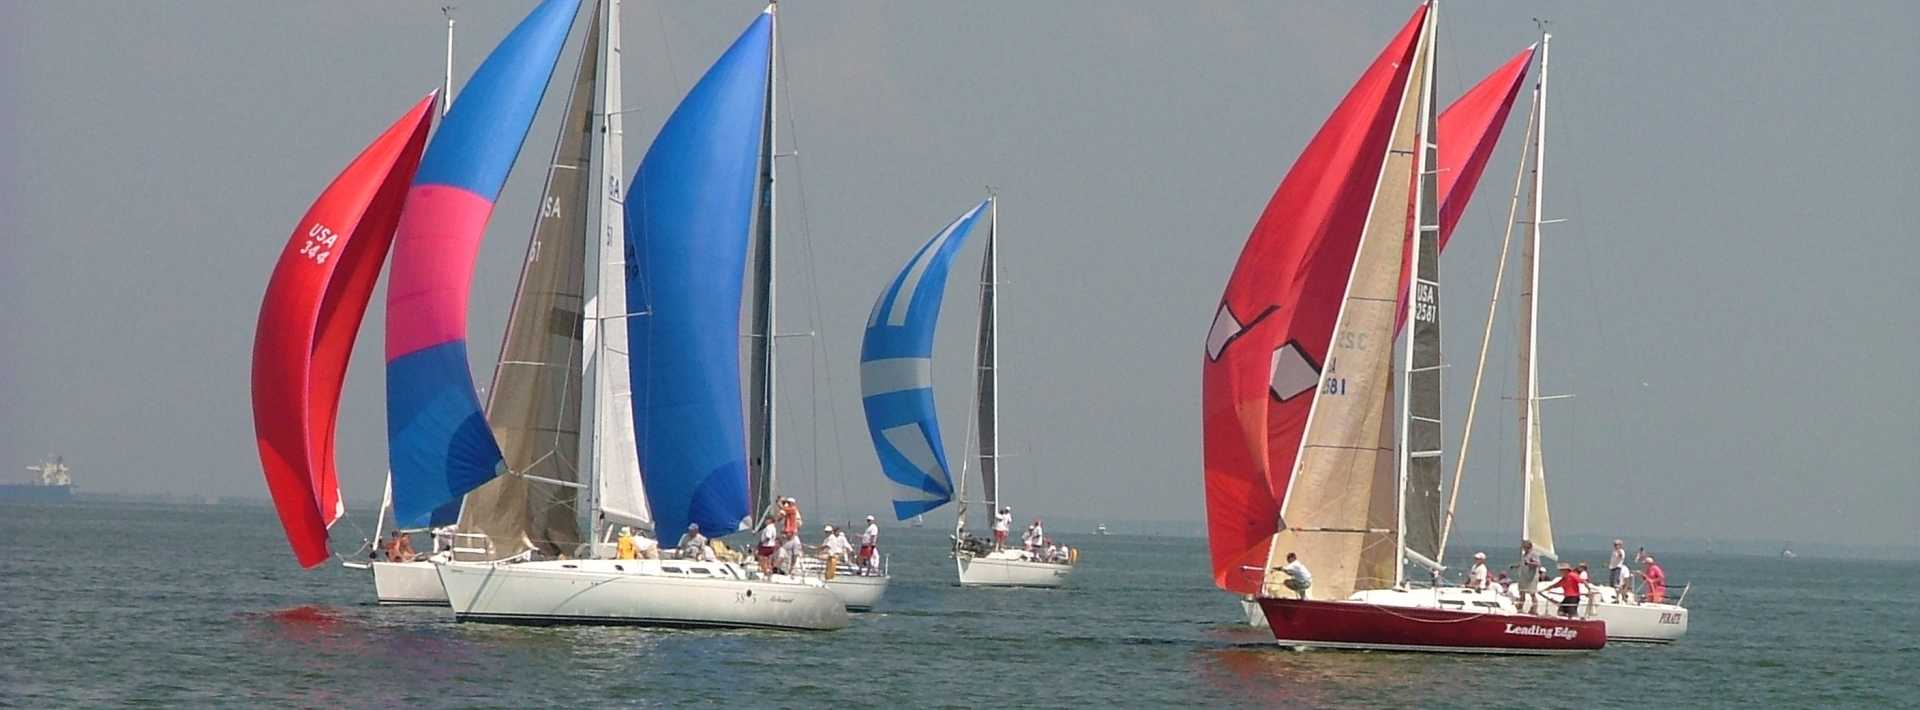 Sailboats on Galveston Bay